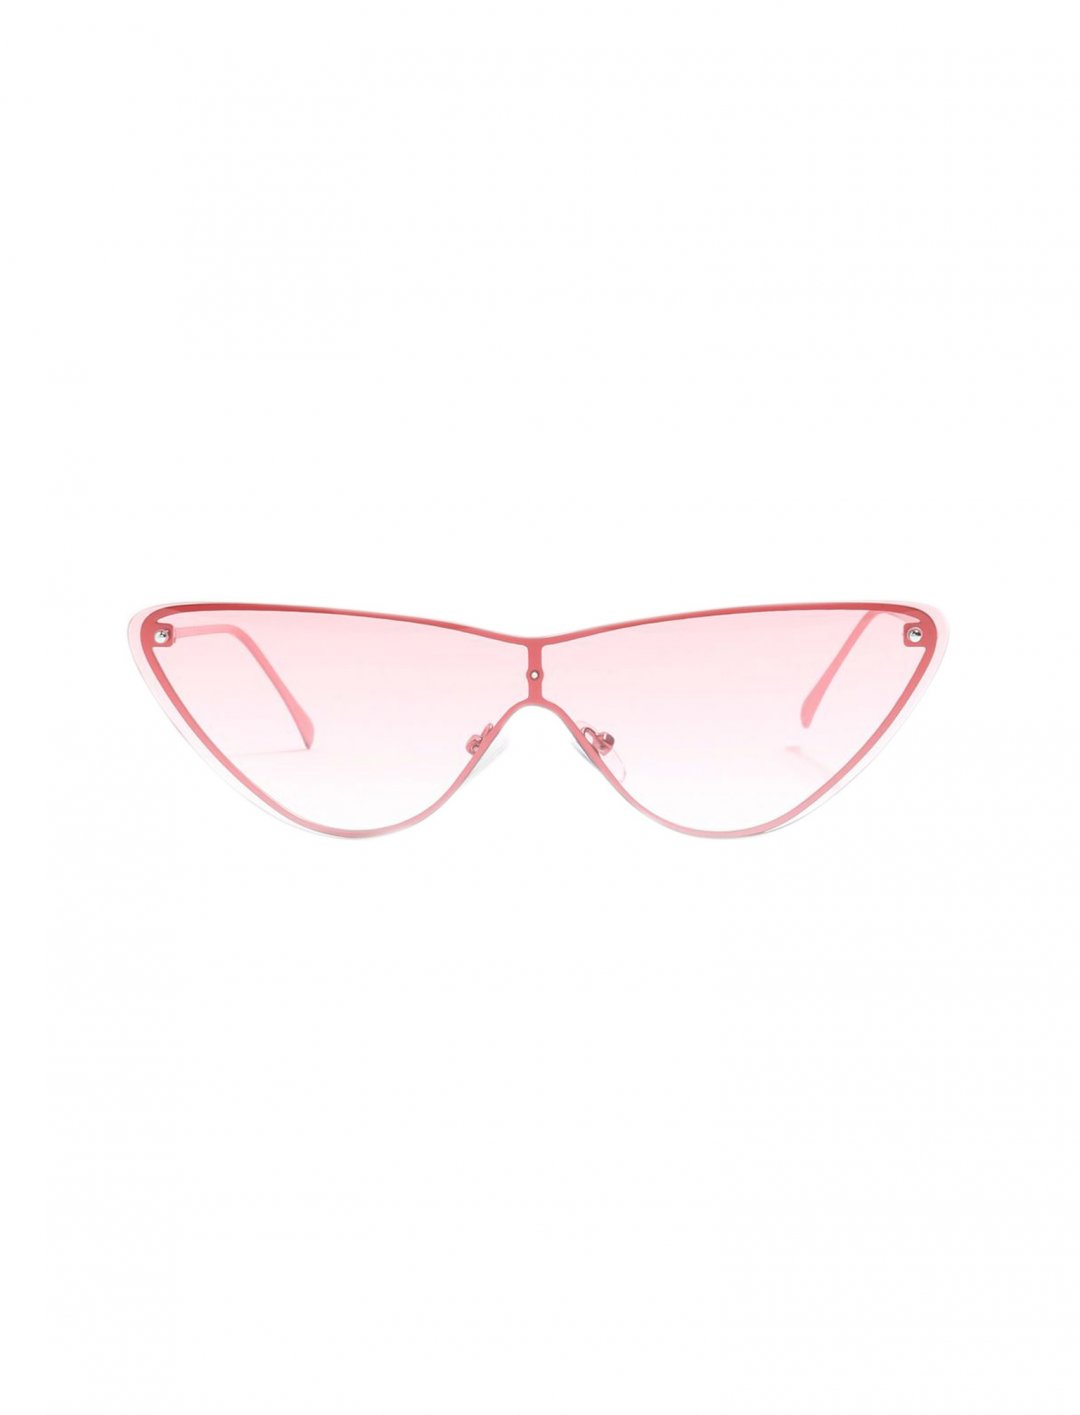 "Topshop Sunglasses {""id"":16,""product_section_id"":1,""name"":""Accessories"",""order"":15} Topshop"